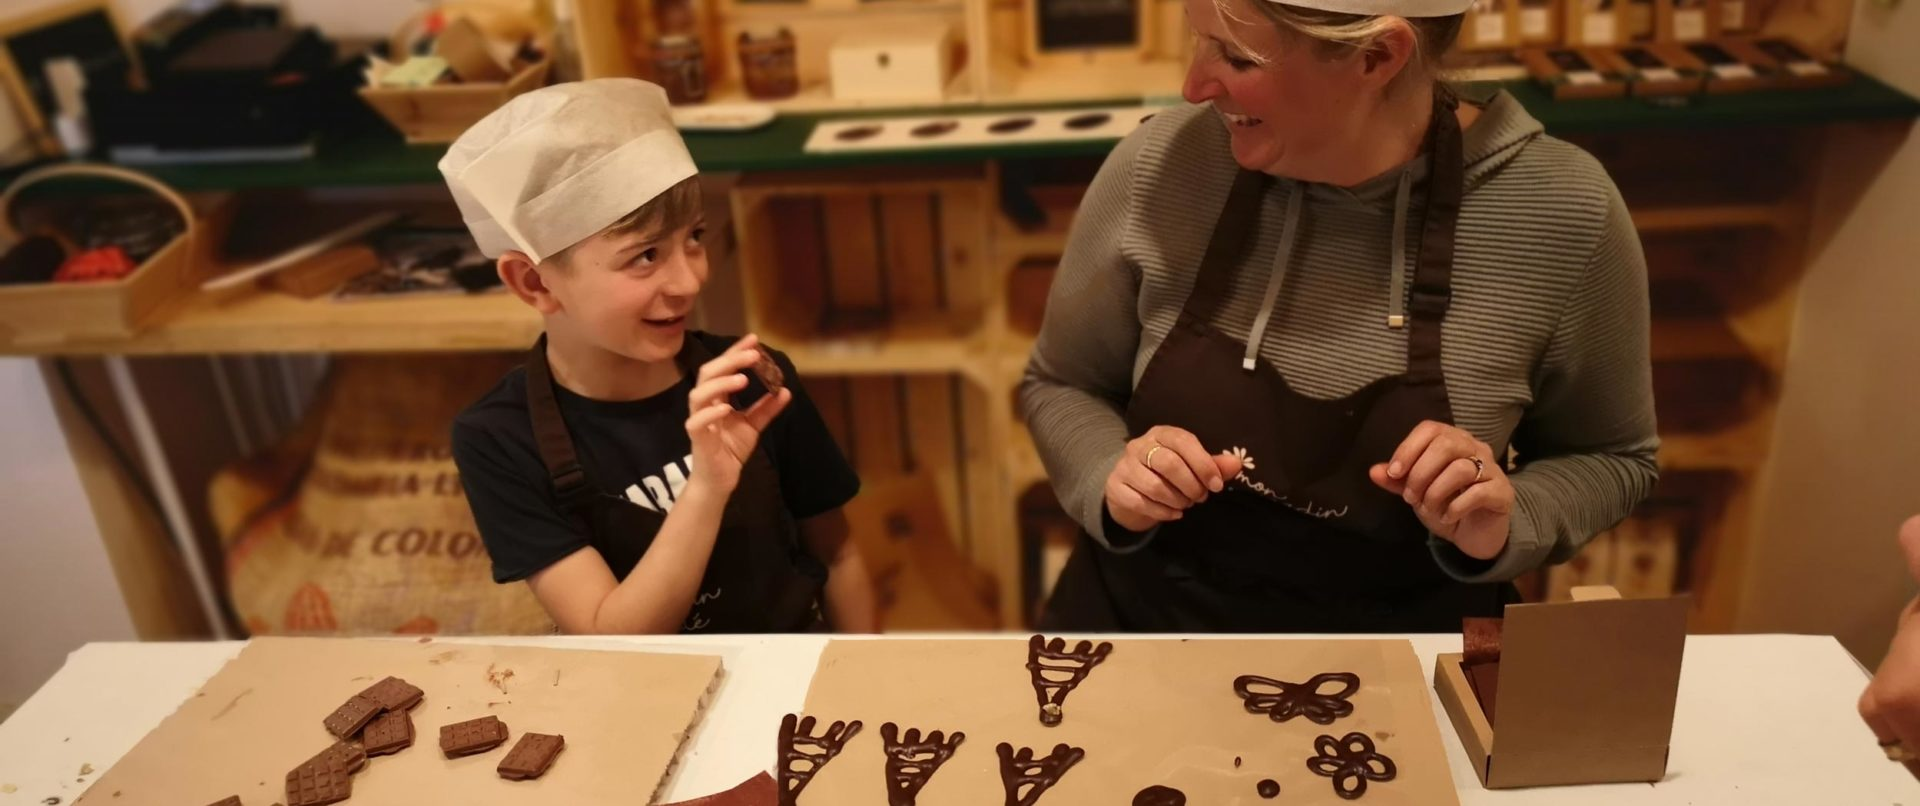 chocolate-making-course-kids-teens-workshop-paris